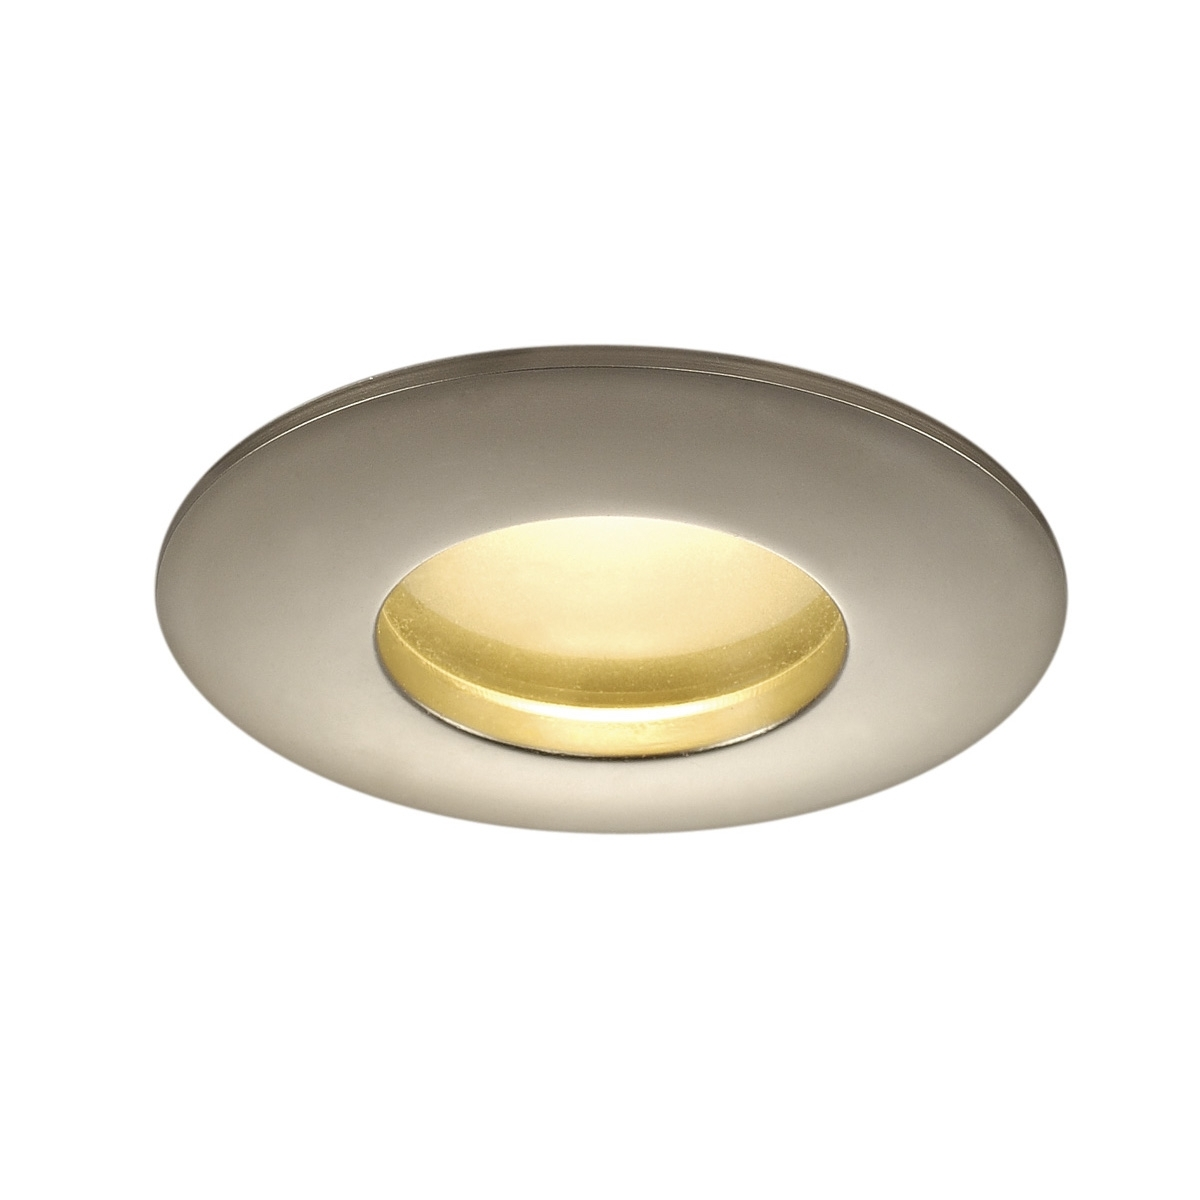 Famous Outdoor Recessed Ceiling Lights Inside Out 65, Outdoor Recessed Ceiling Light, Led, 3000K, Round, Titanium (View 11 of 20)